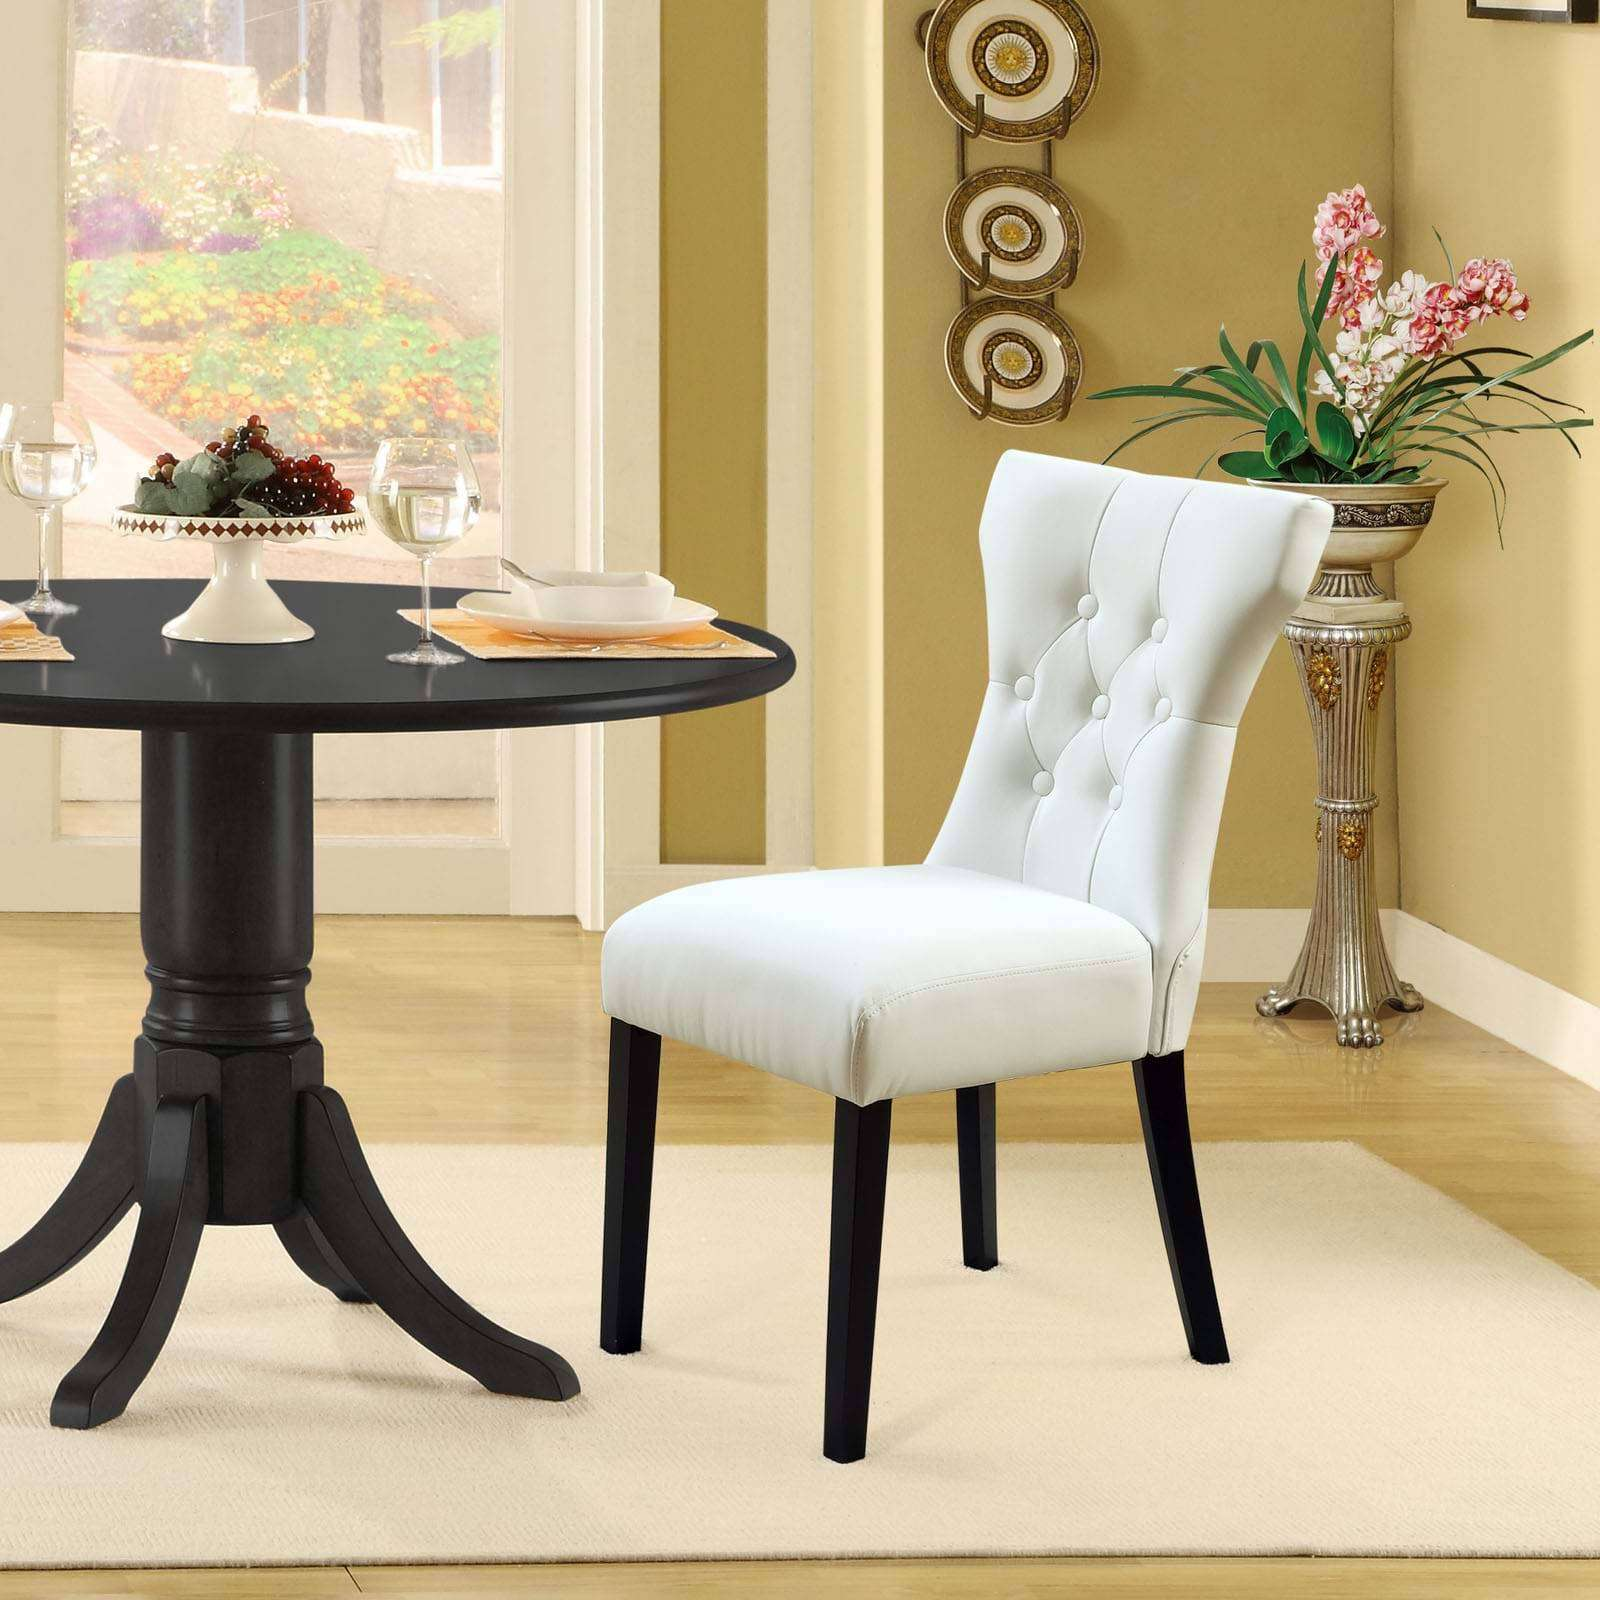 Our rattan lounge set is a real talking piece, too. Modterior :: Dining Room :: Dining Sets :: Silhouette